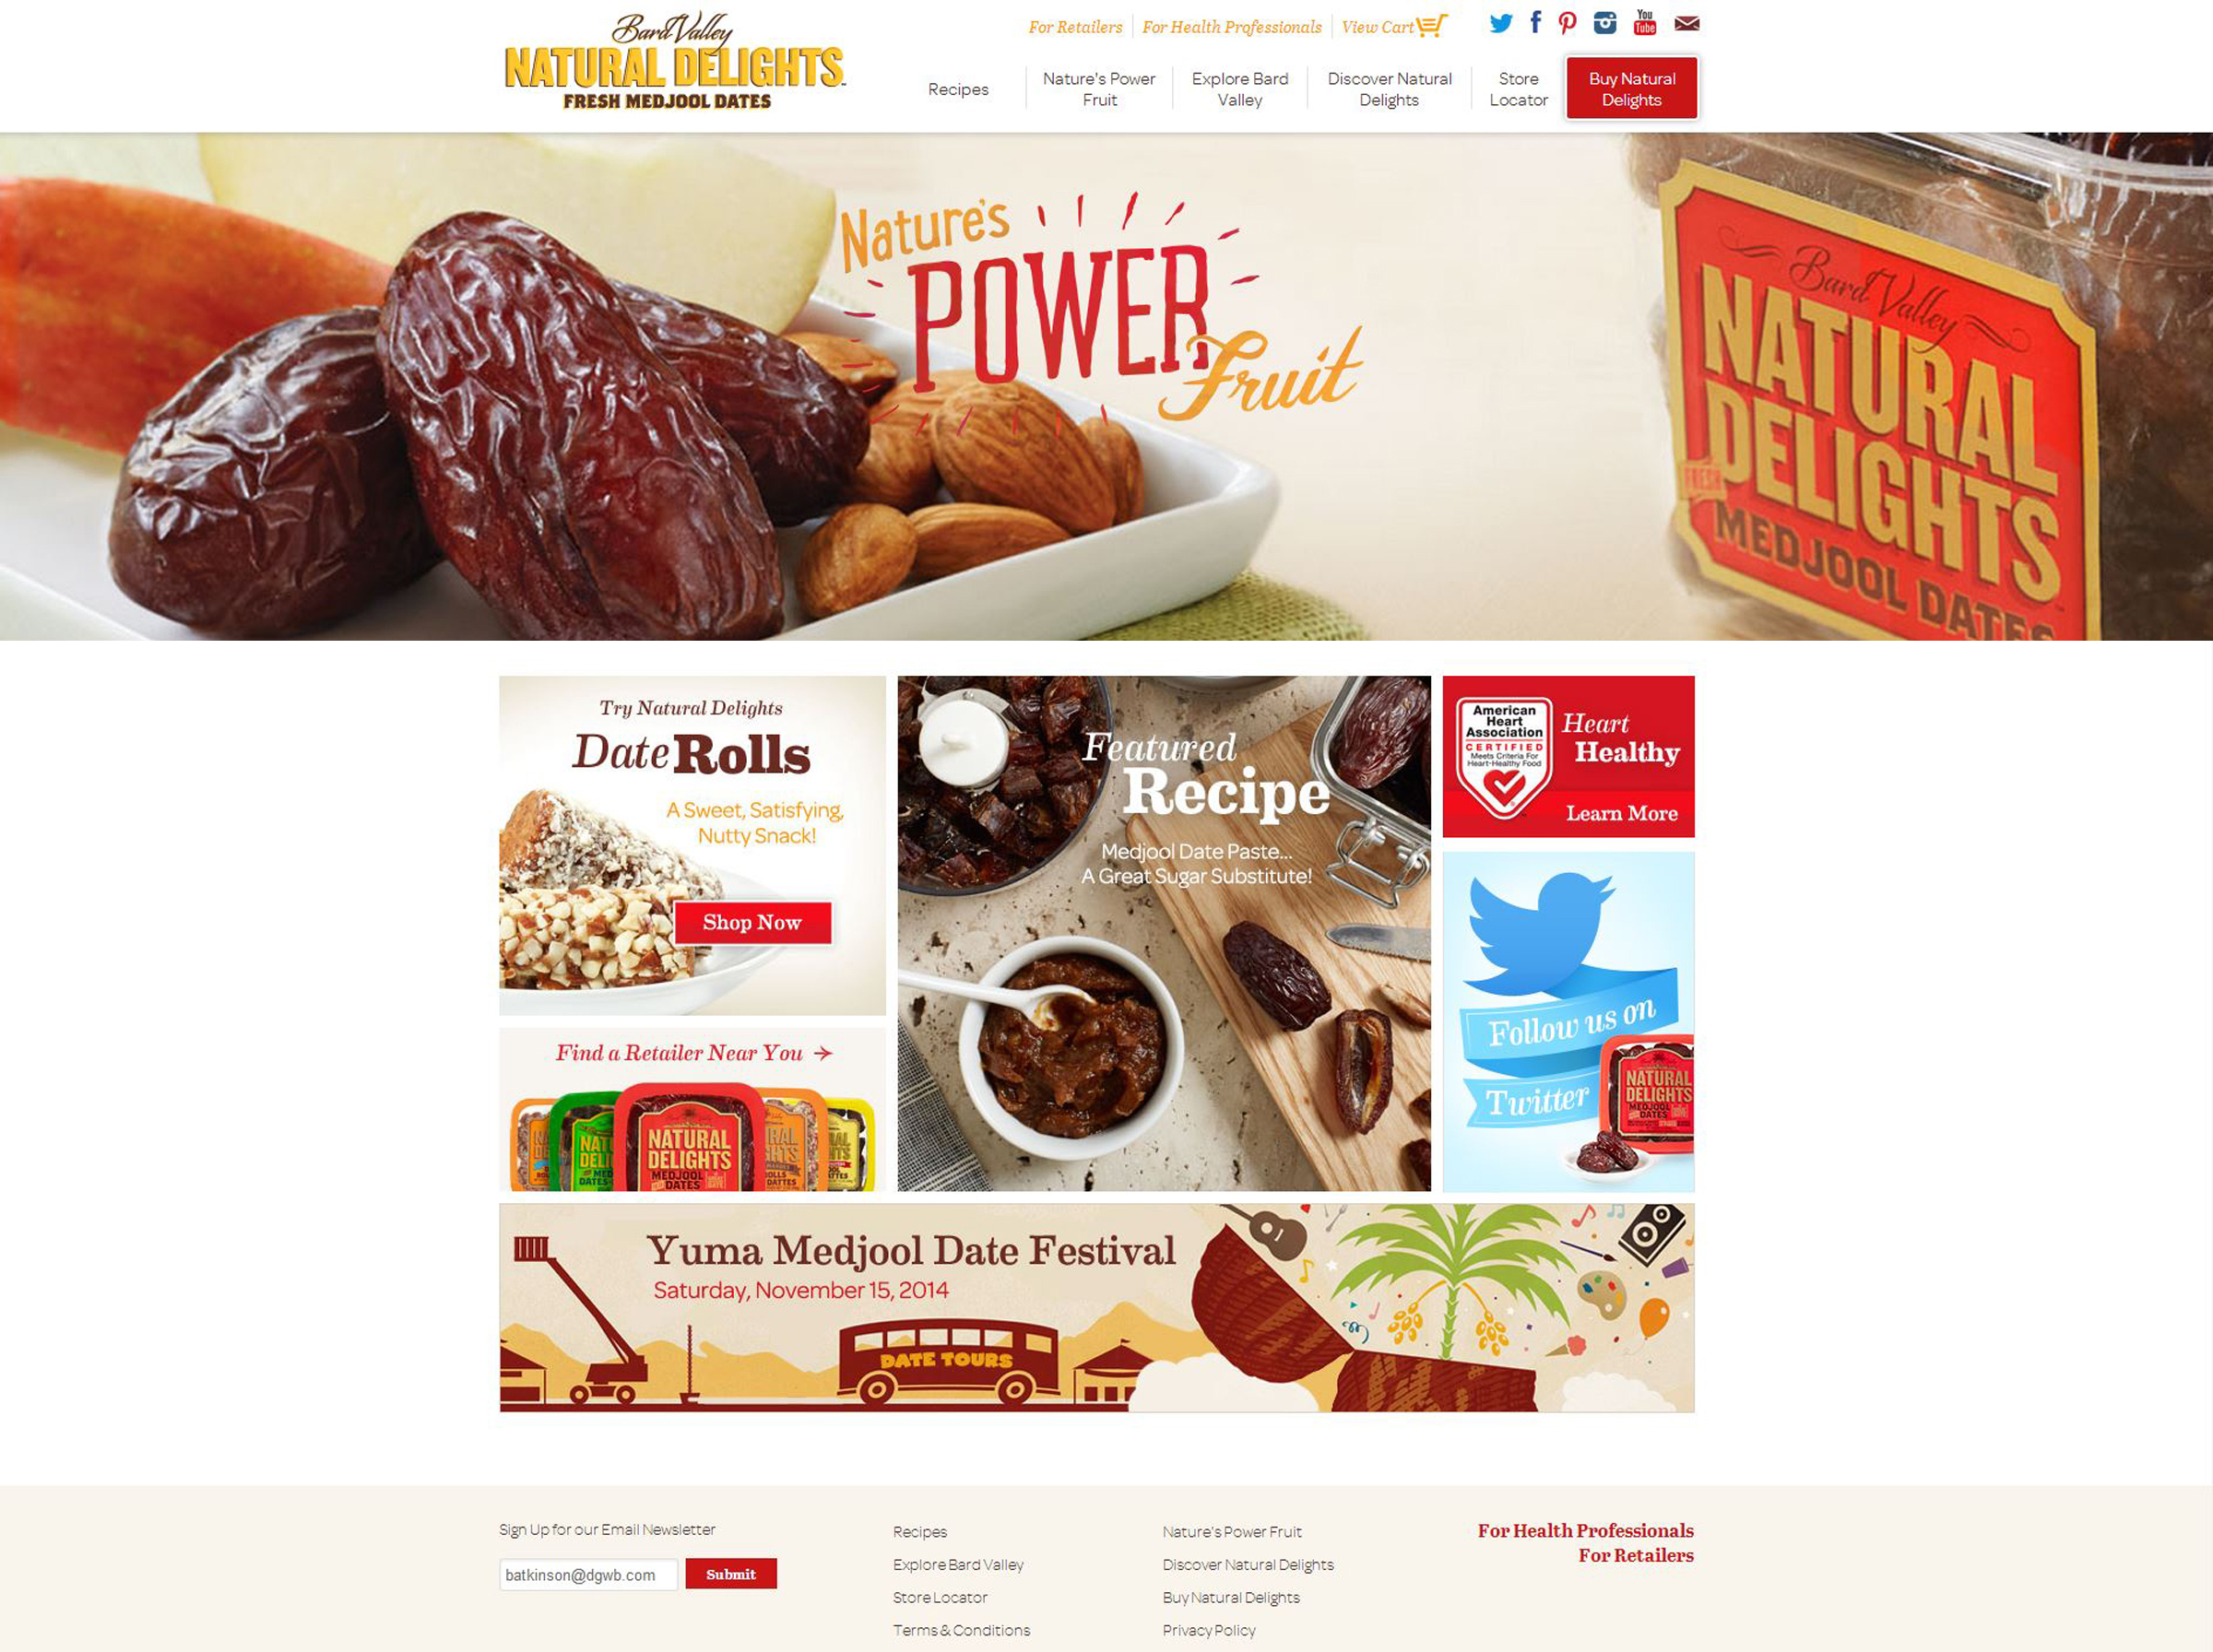 The new Natural Delights website is easy to navigate and engaging for consumers. (AP Photo/Natural Delights Medjool Dates)